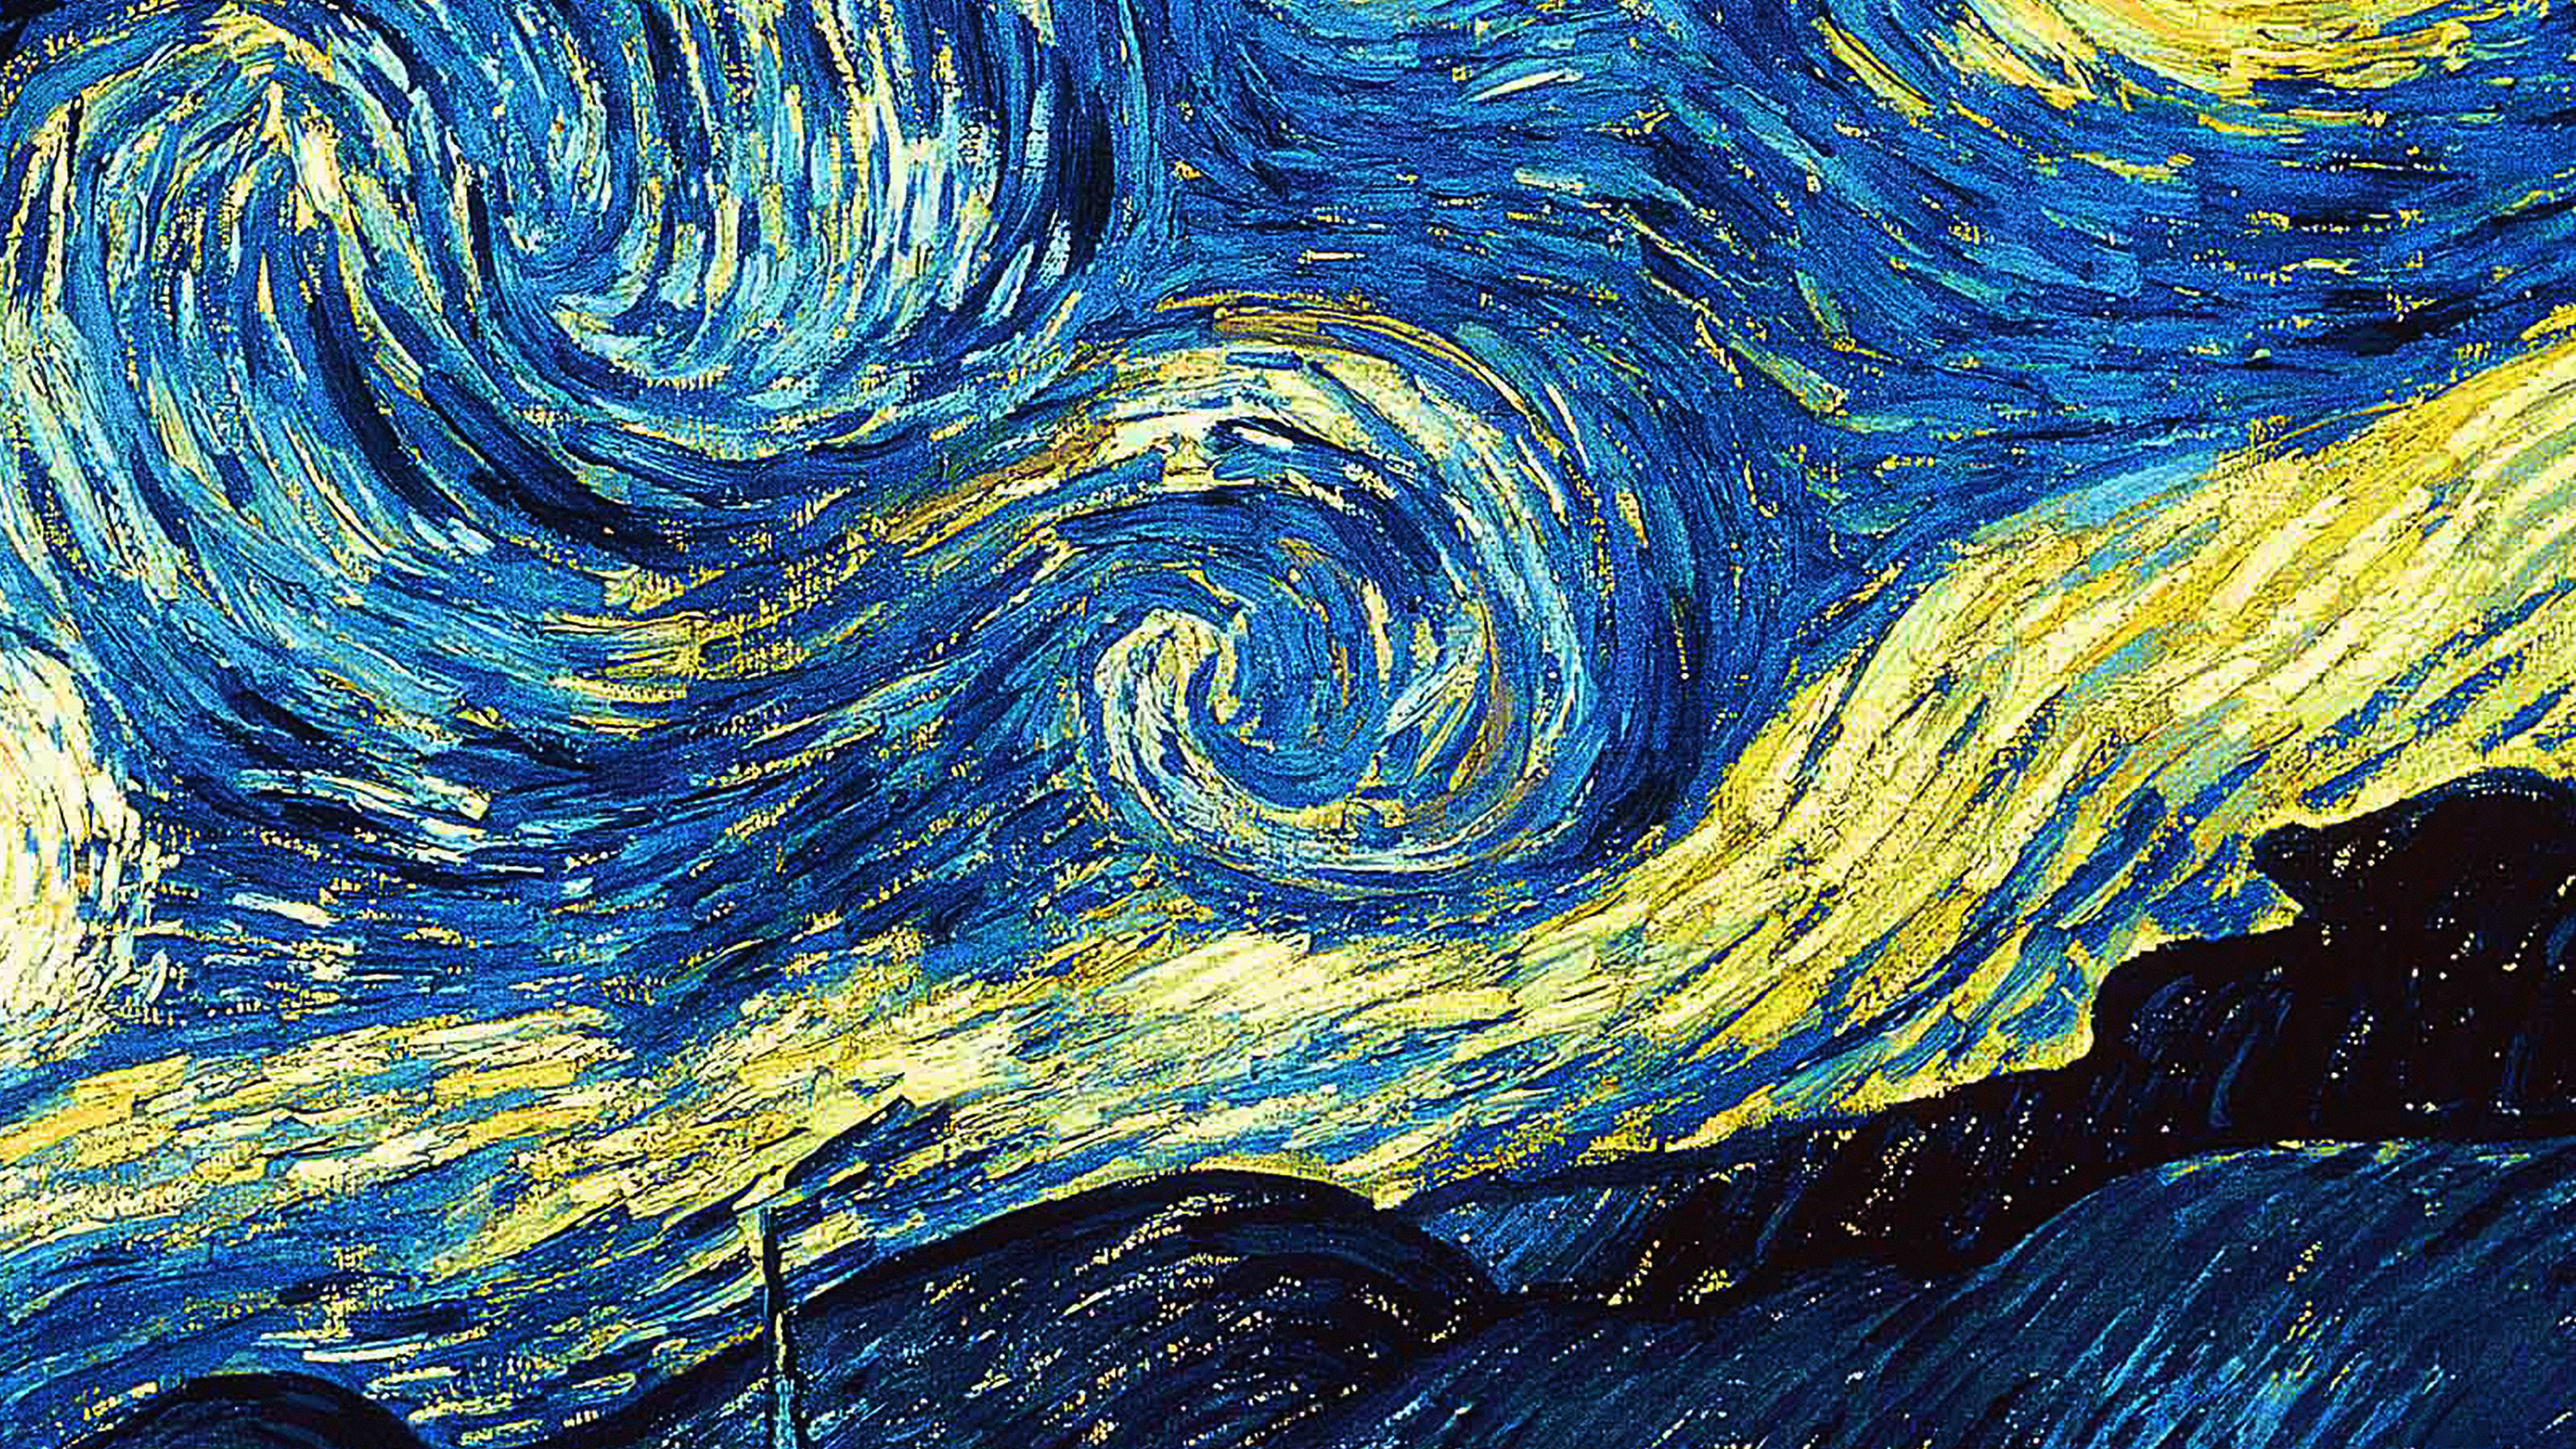 a starry night essay Read this essay on art starry night come browse our large digital warehouse of free sample essays get the knowledge you need in order to pass your classes and more.